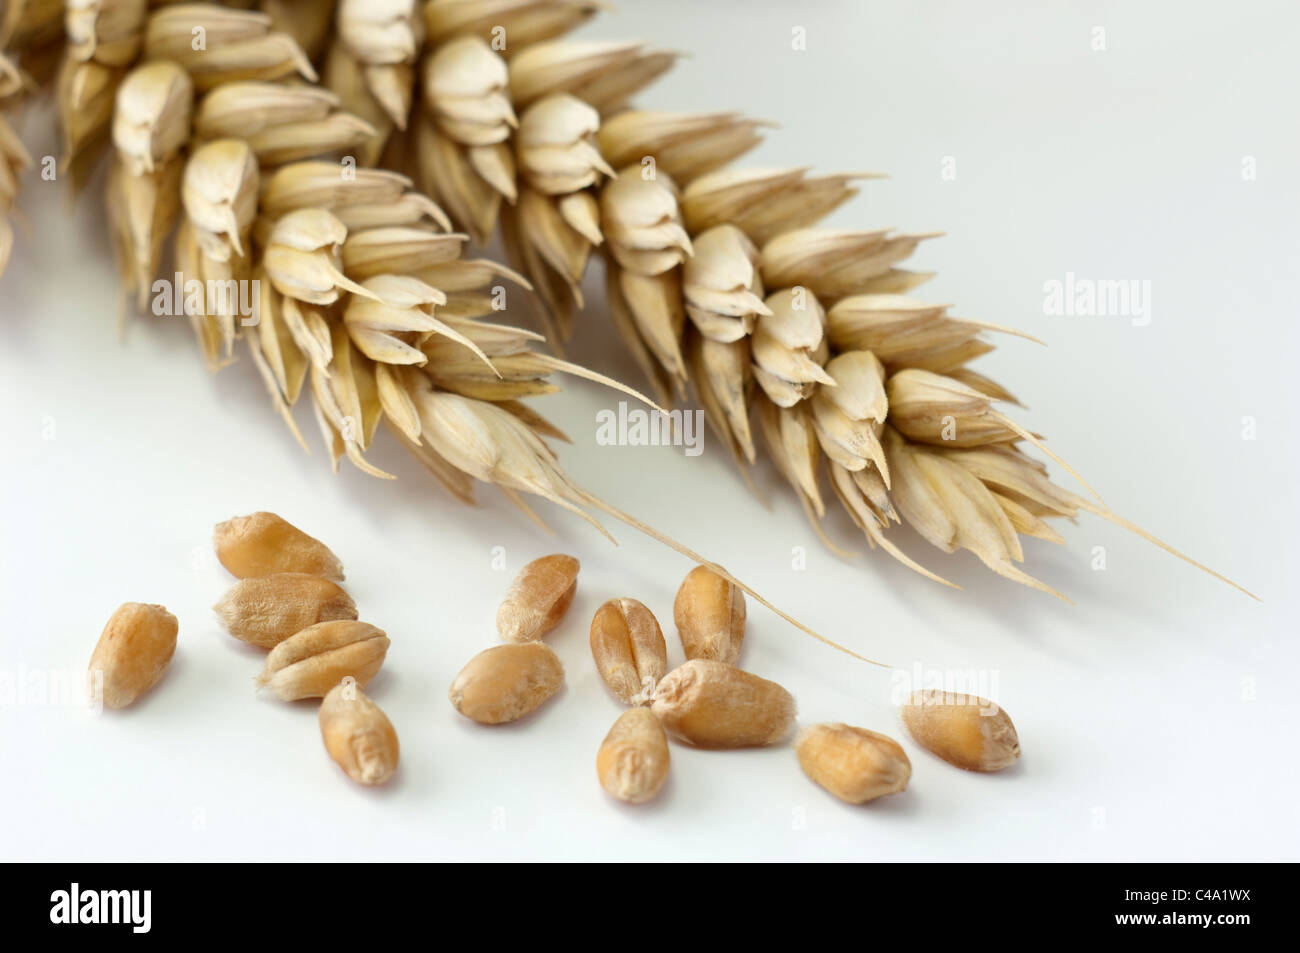 Common Wheat, Bread Wheat (Triticum aestivum). Ripe ears and seeds. Studio picture against a white background. - Stock Image